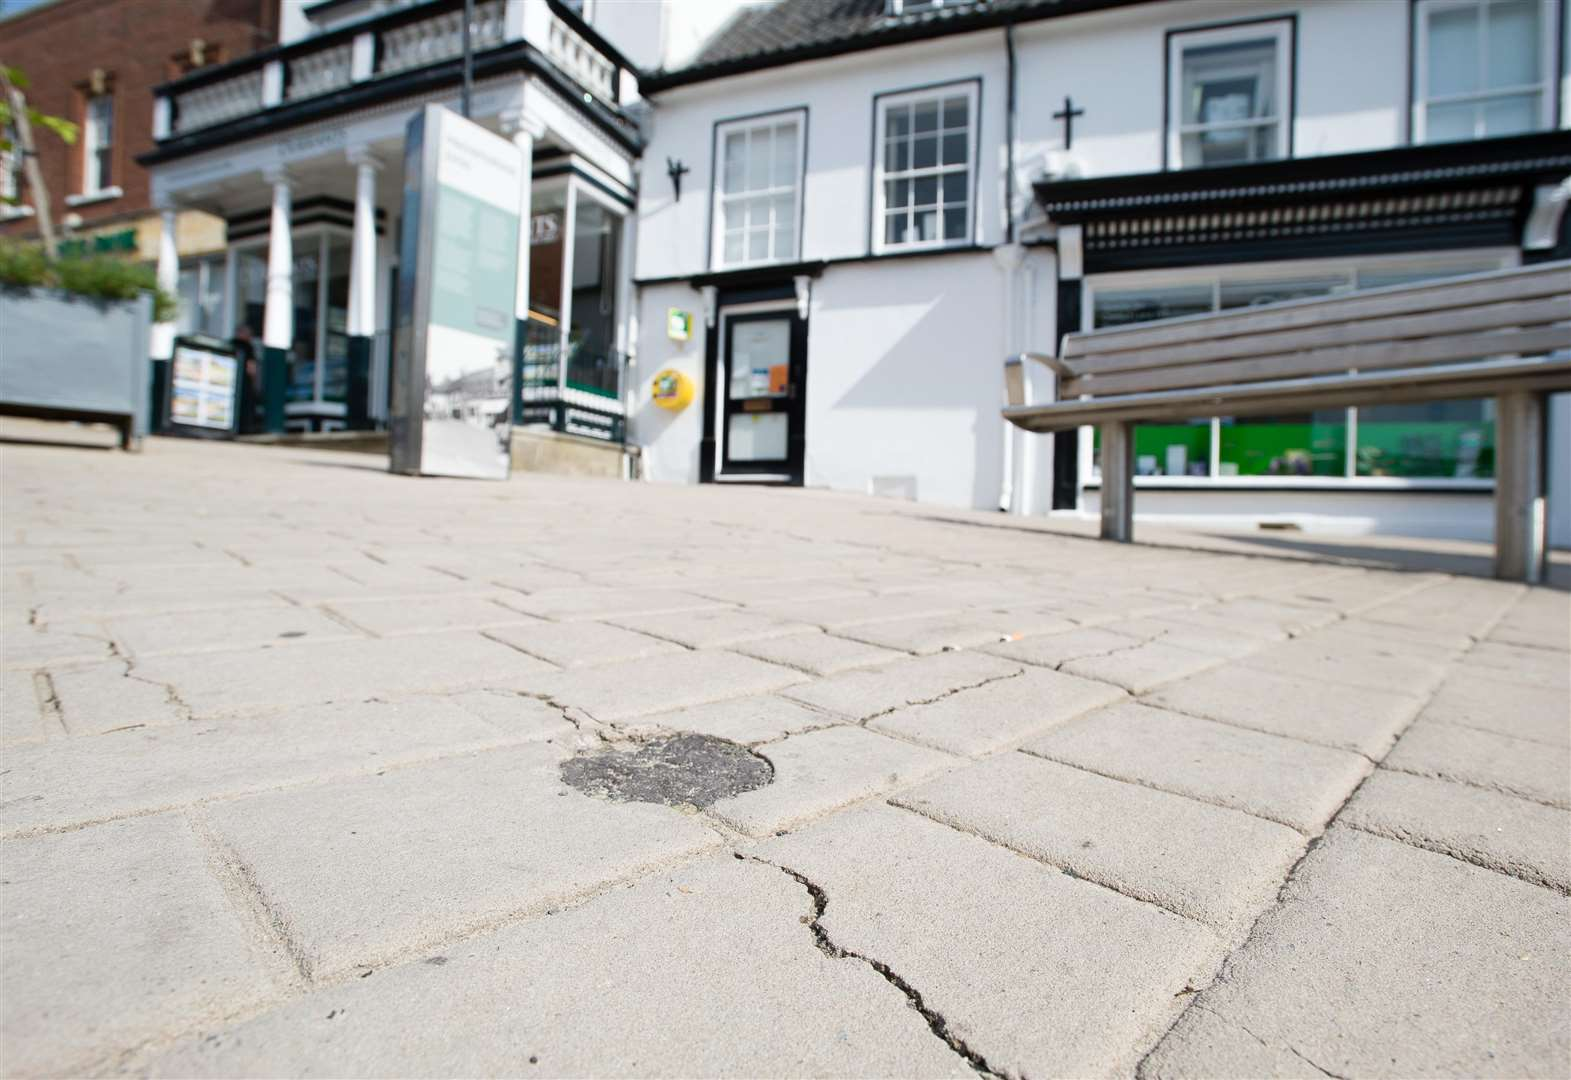 Paving cracks in Diss may never be explained